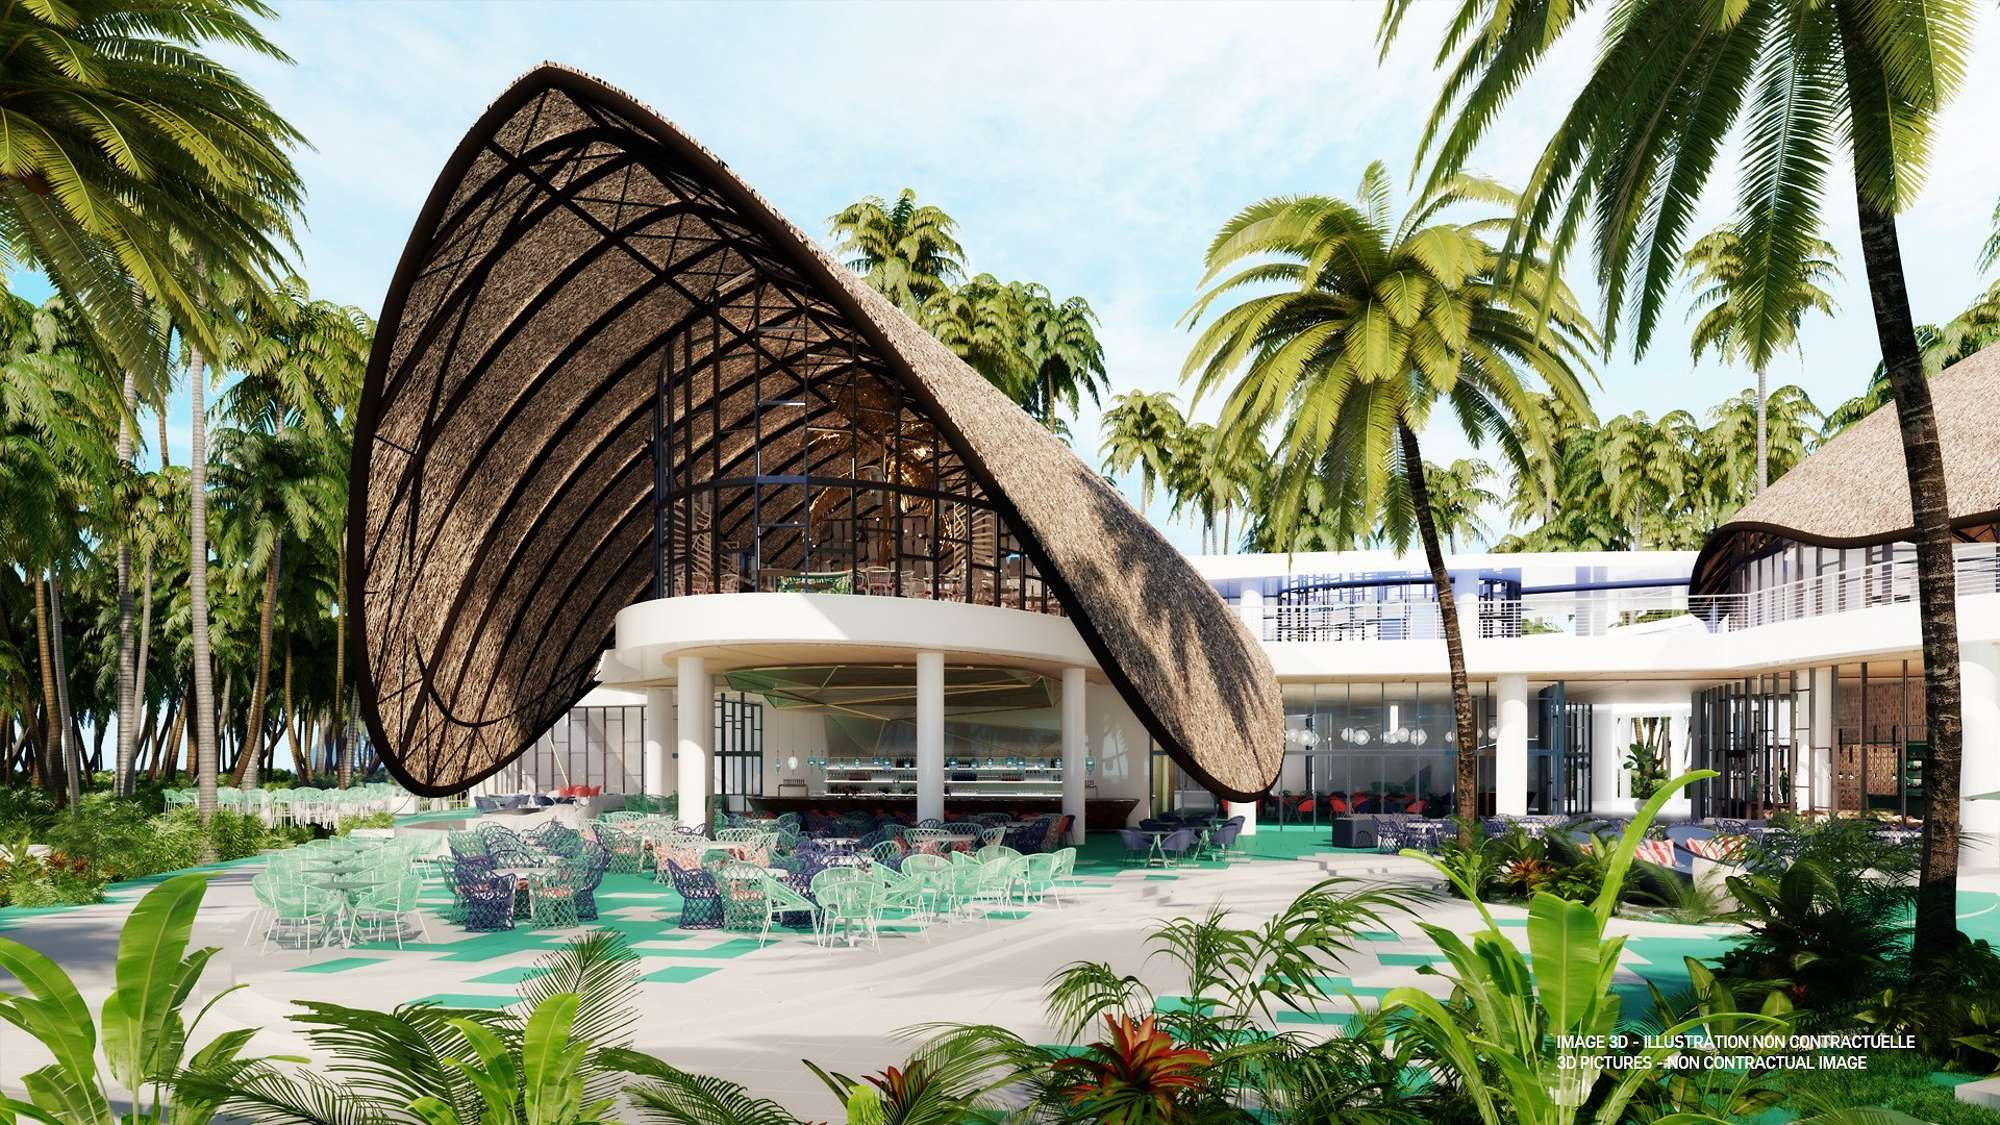 https___ns.clubmed.com_dream_EXCLUSIVE_COLLECTION_Resorts_Miches_Playa_Esmeralda_182641-6918x7g6md-swhr